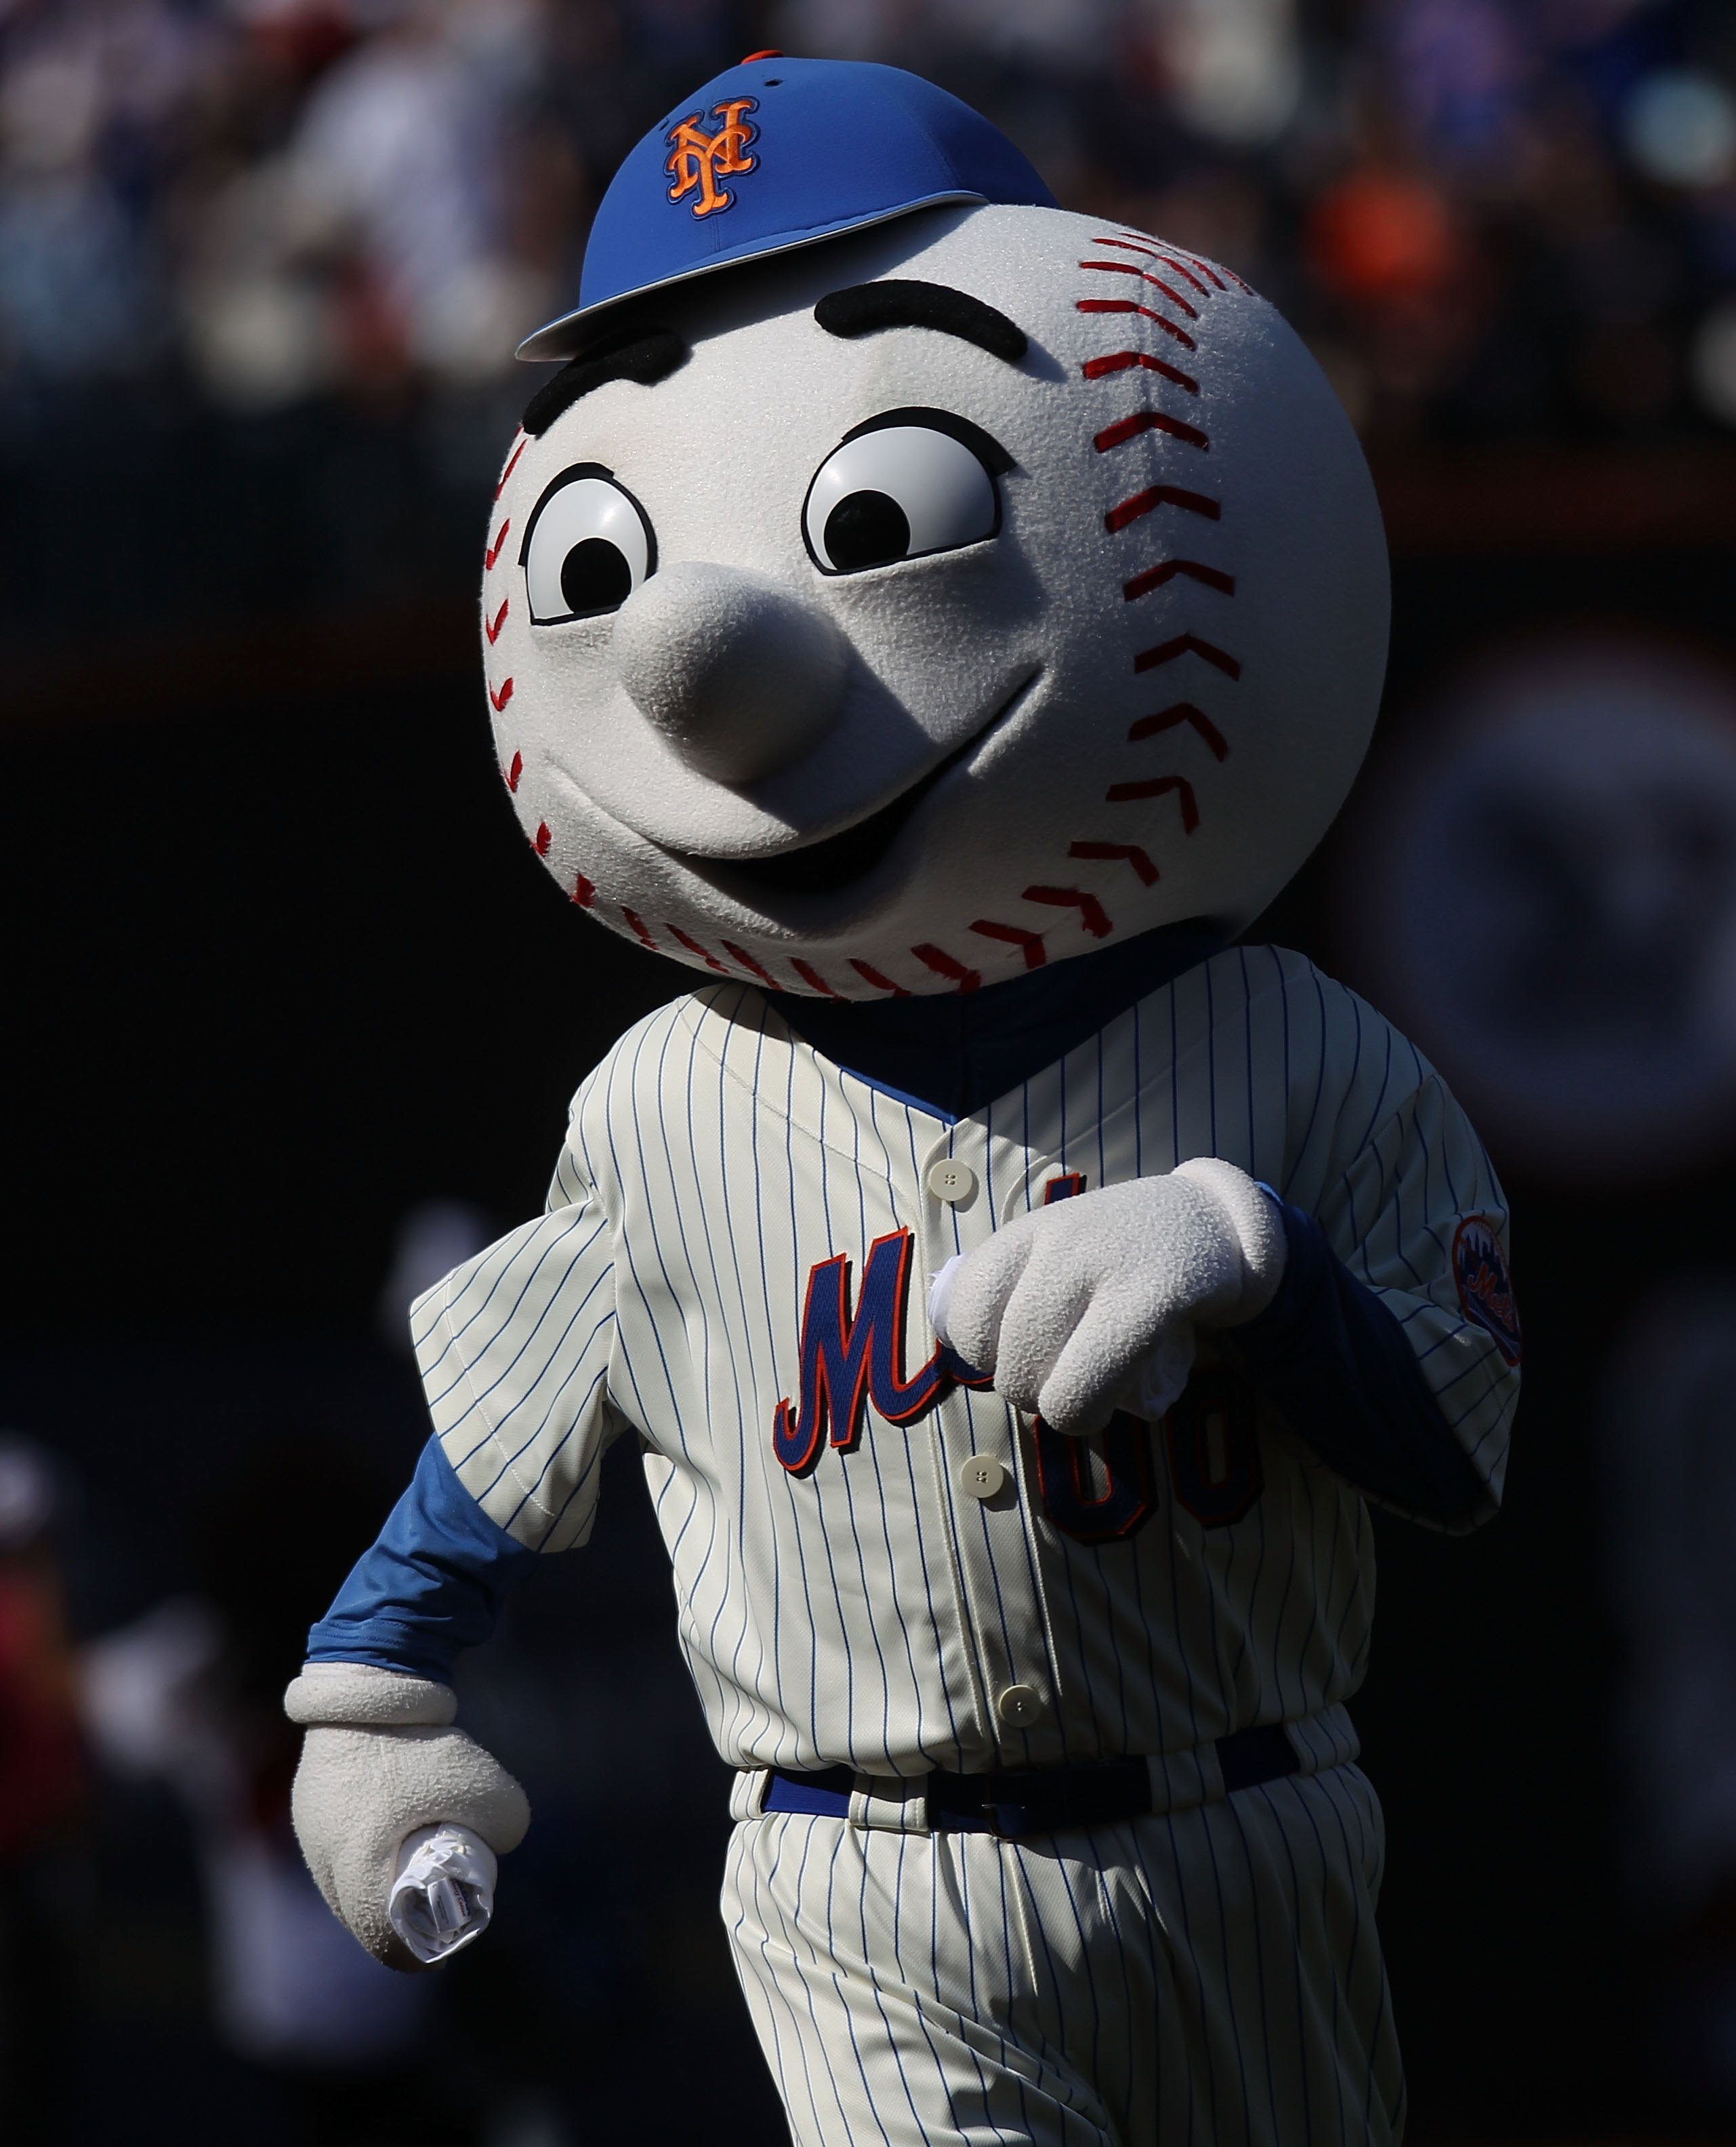 NEW YORK - APRIL 05:  Mr. Met dances during the game between the New York Mets and the Florida Marlins during their Opening Day Game at Citi Field on April 5, 2010 in the Flushing neighborhood of the Queens borough of New York City.  (Photo by Nick Laham/